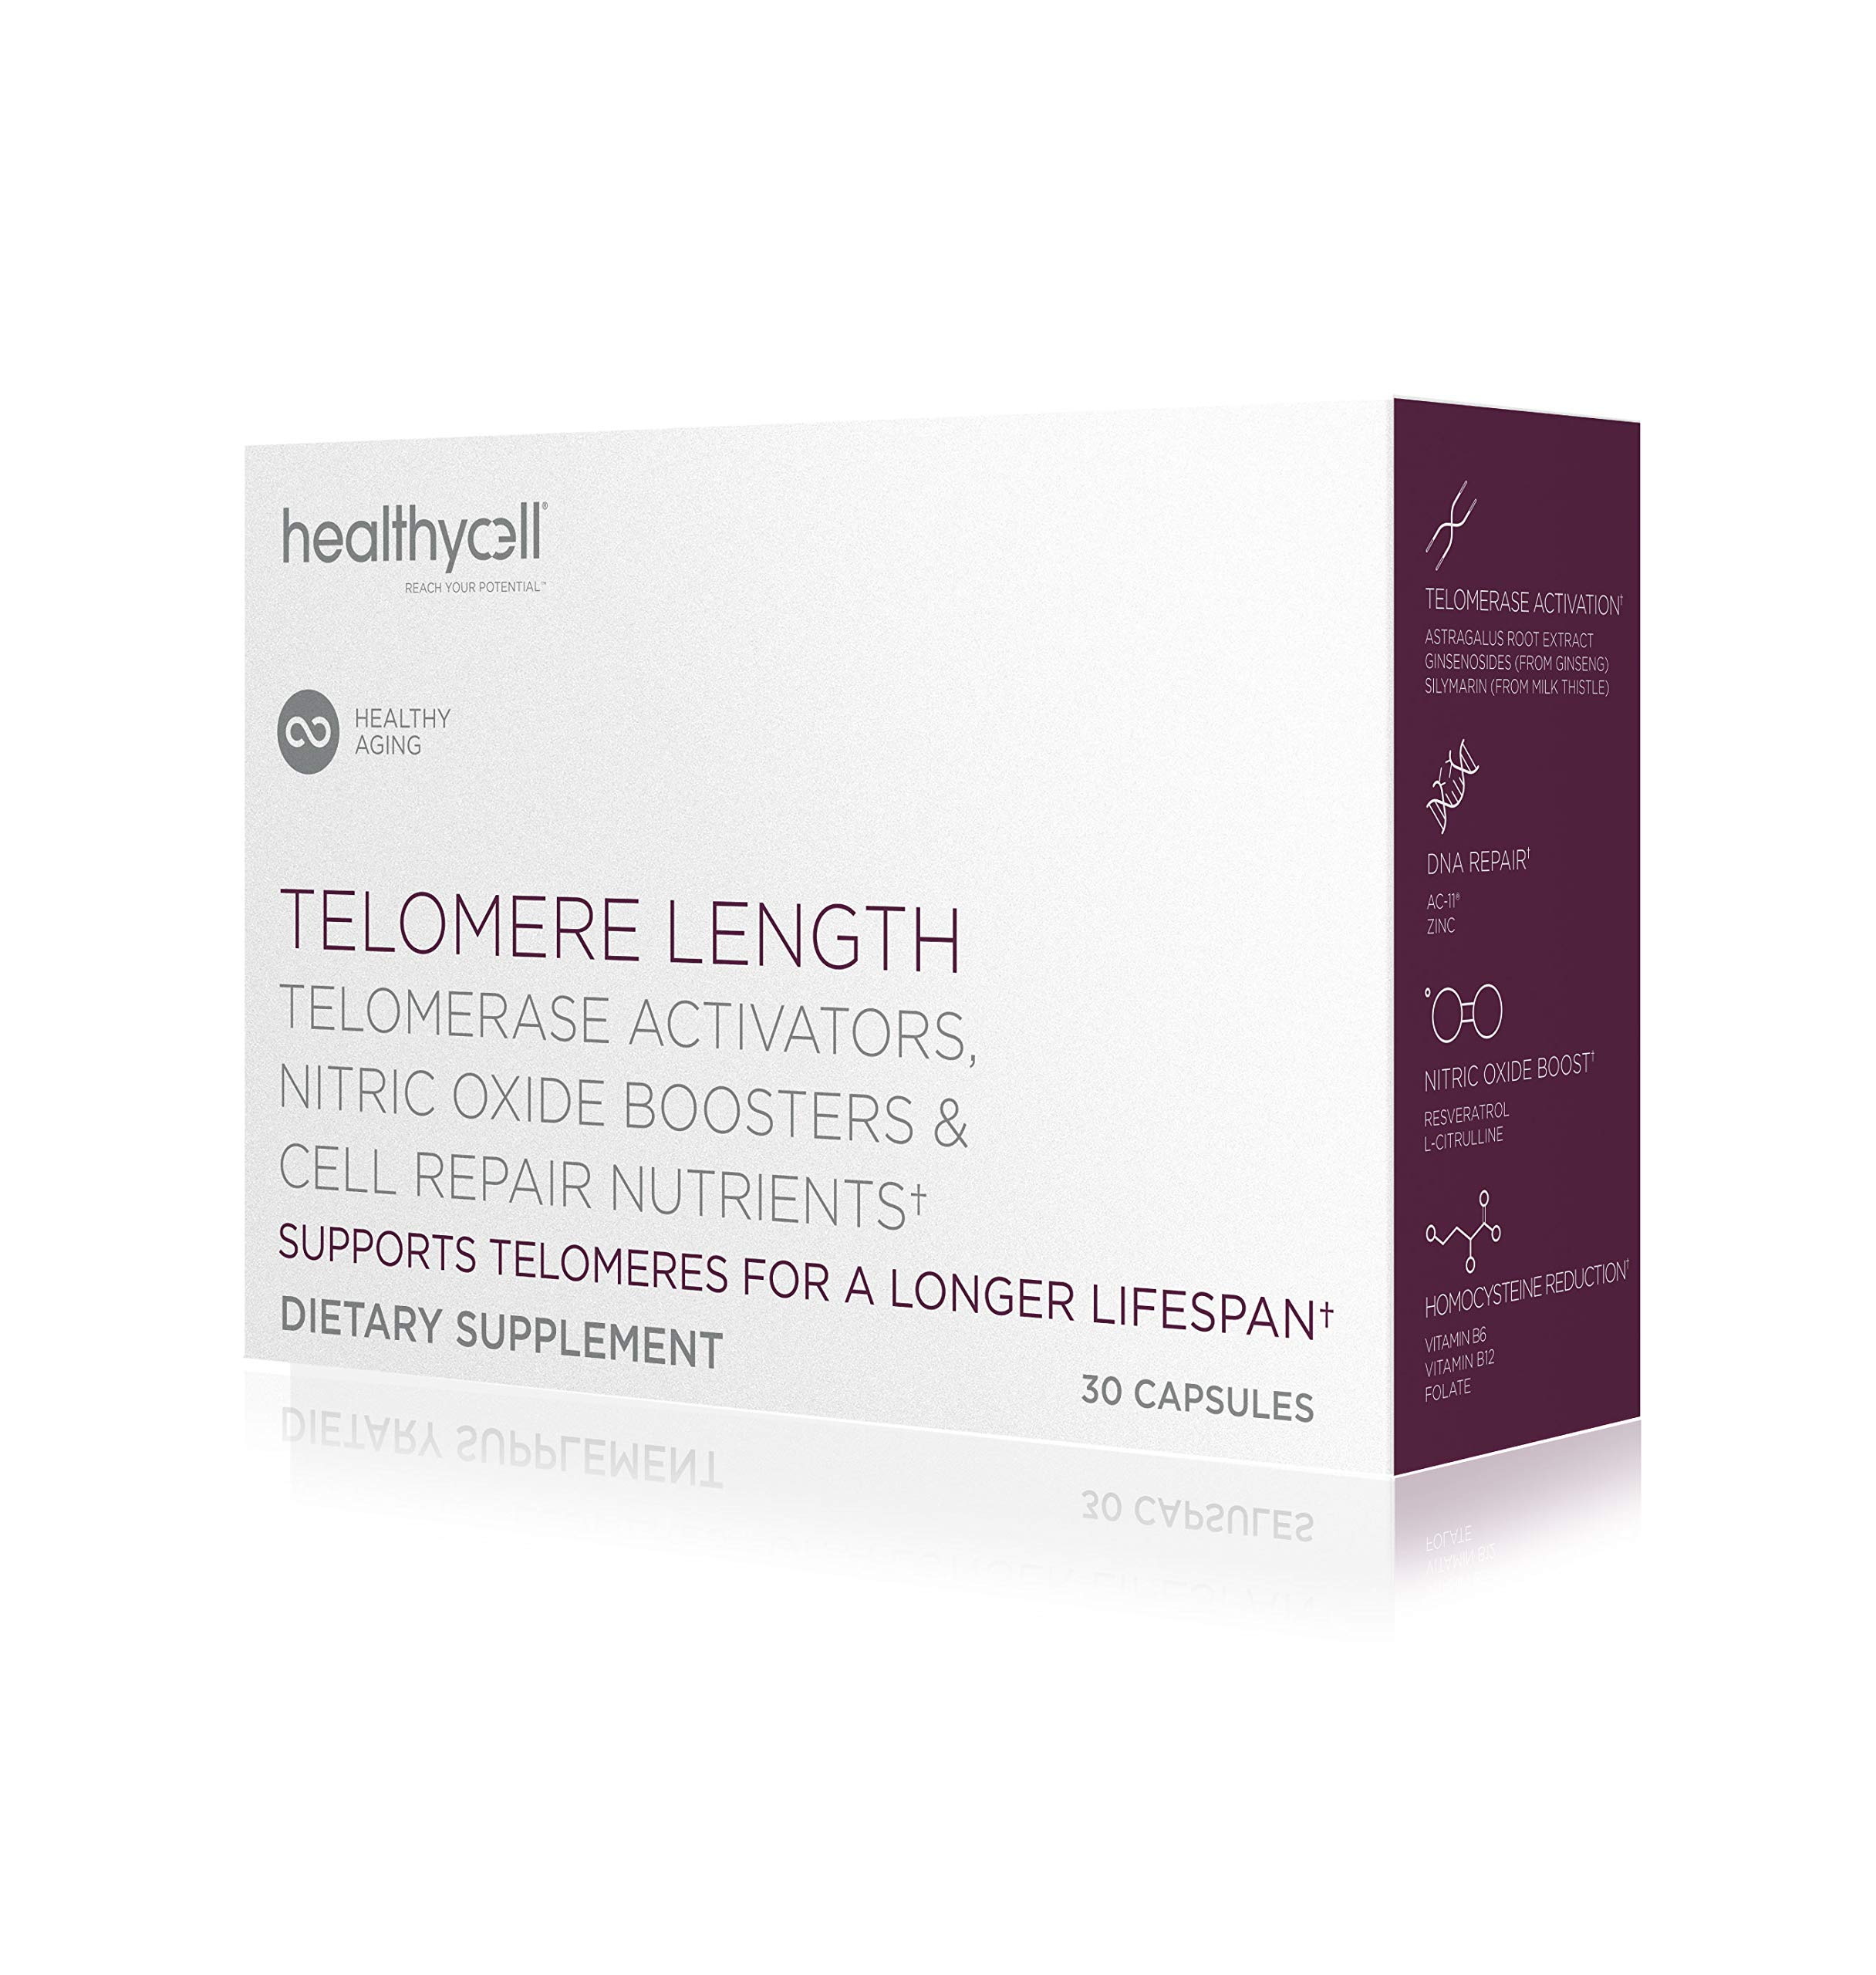 Healthycell Telomere Length | Supplement for Lengthening Telomeres and DNA Repair, Anti Aging, Cell Health, Stem Cell Support | Clinically Proven Ingredient AC11® | 578 mg Capsules